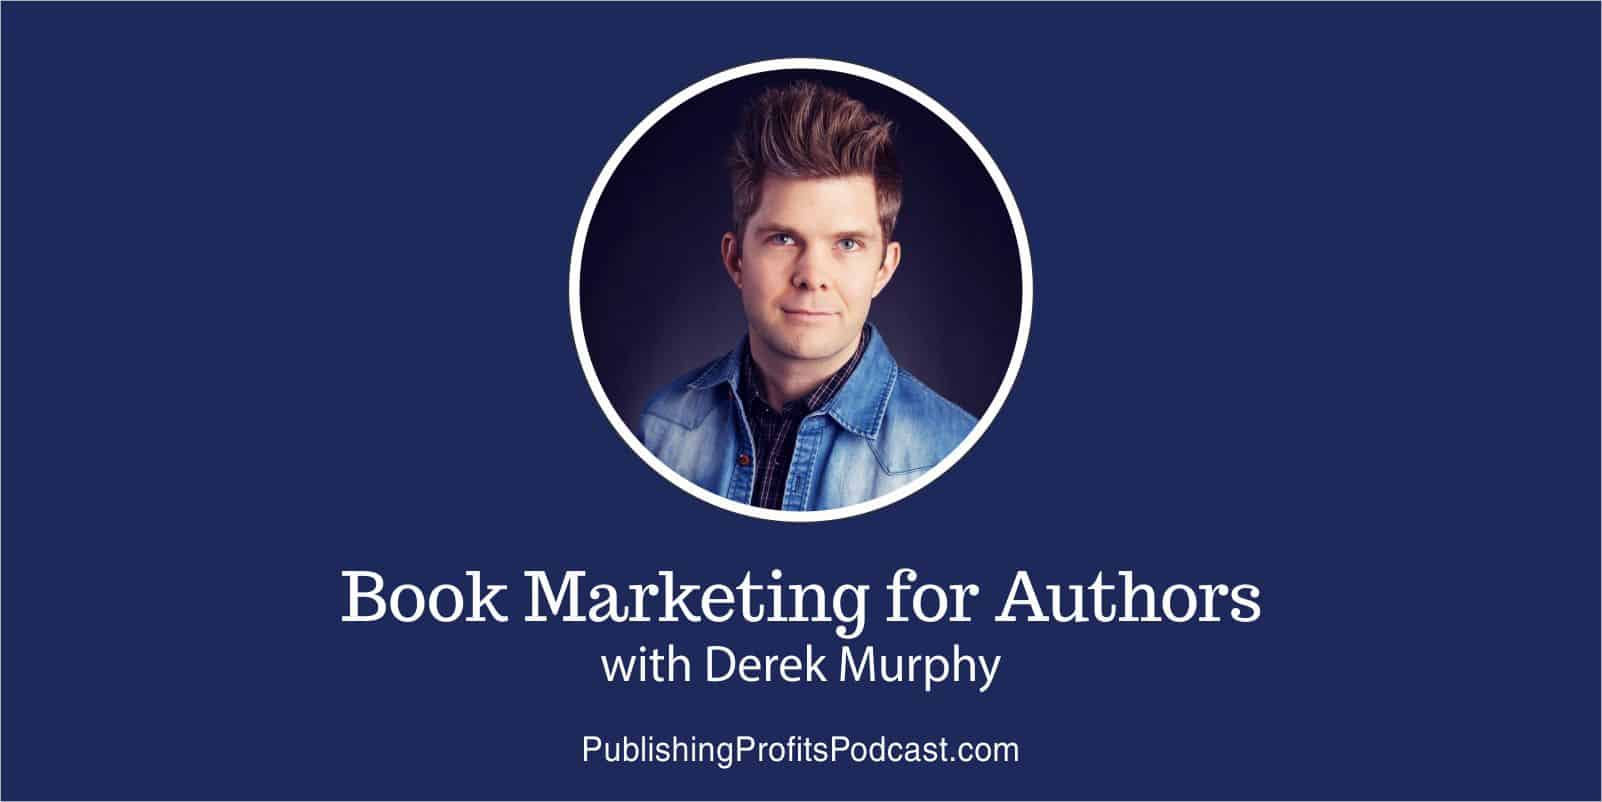 Book Marketing Derek Murphy header